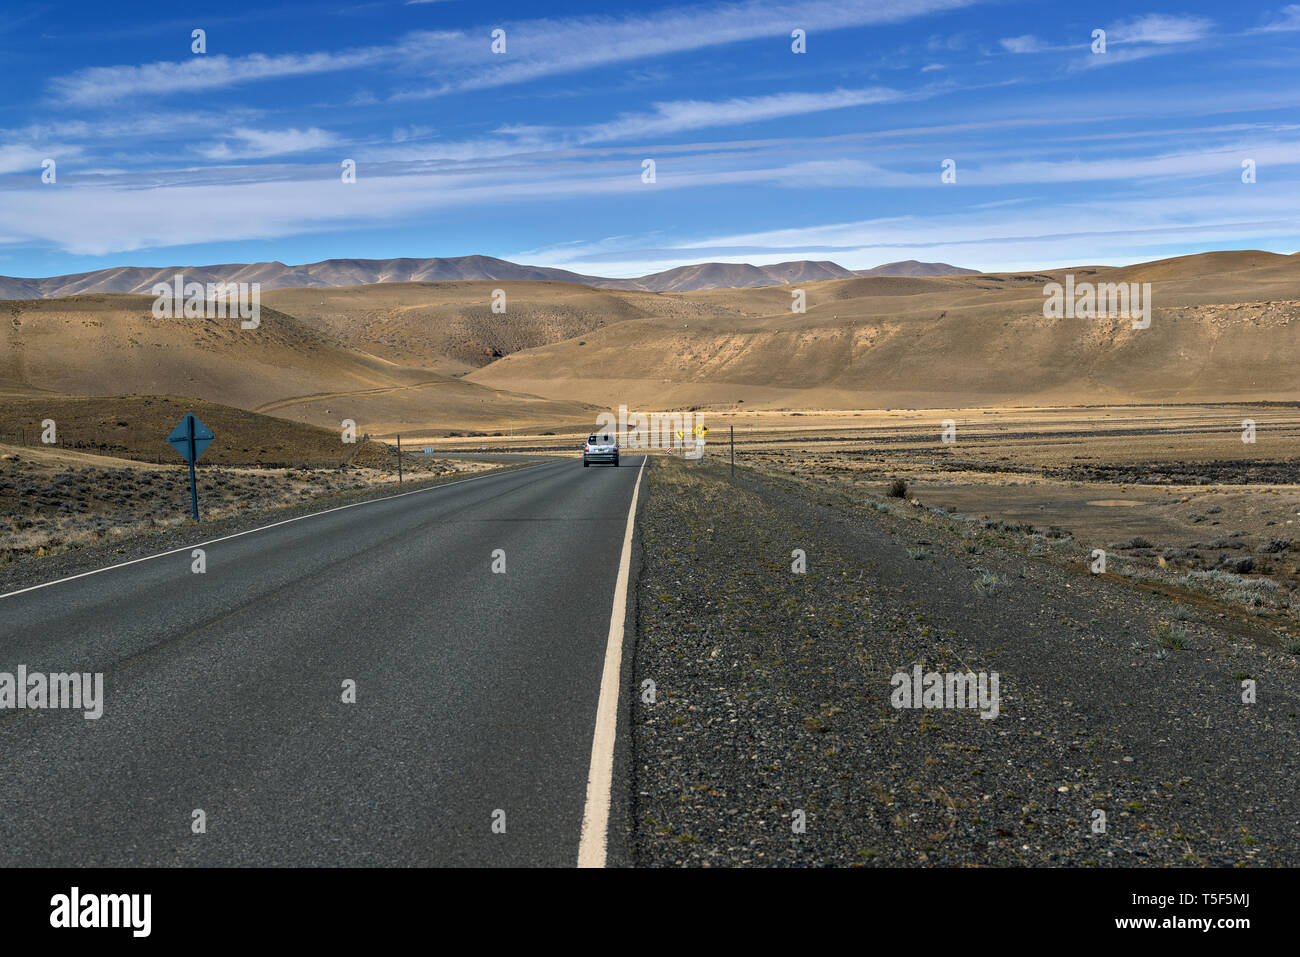 the ruta 40, Argentina - Stock Image